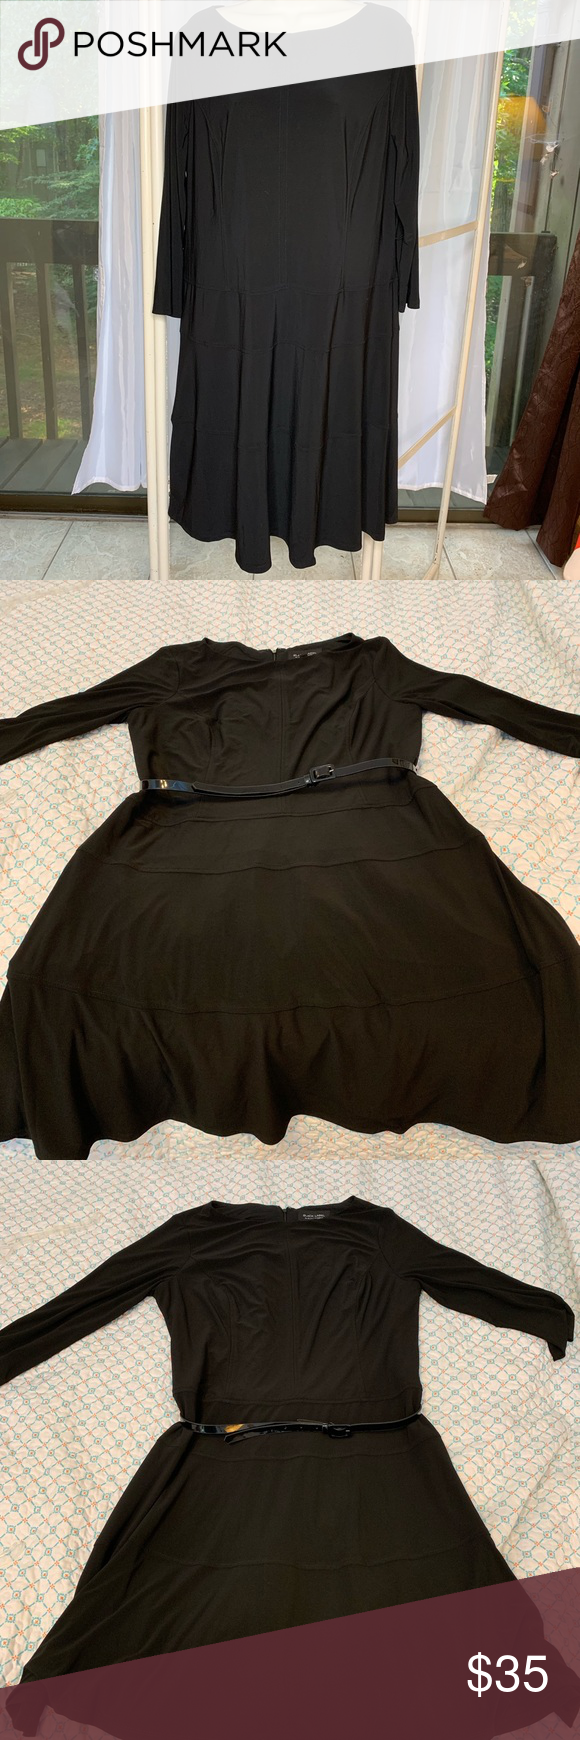 Evan Picone Little Black Dress Nwt Size 16 Give This Dress A Chance Hard To Photograph Really Cute Design Little Black Dress Black Dress Classic Black Dress [ 1740 x 580 Pixel ]